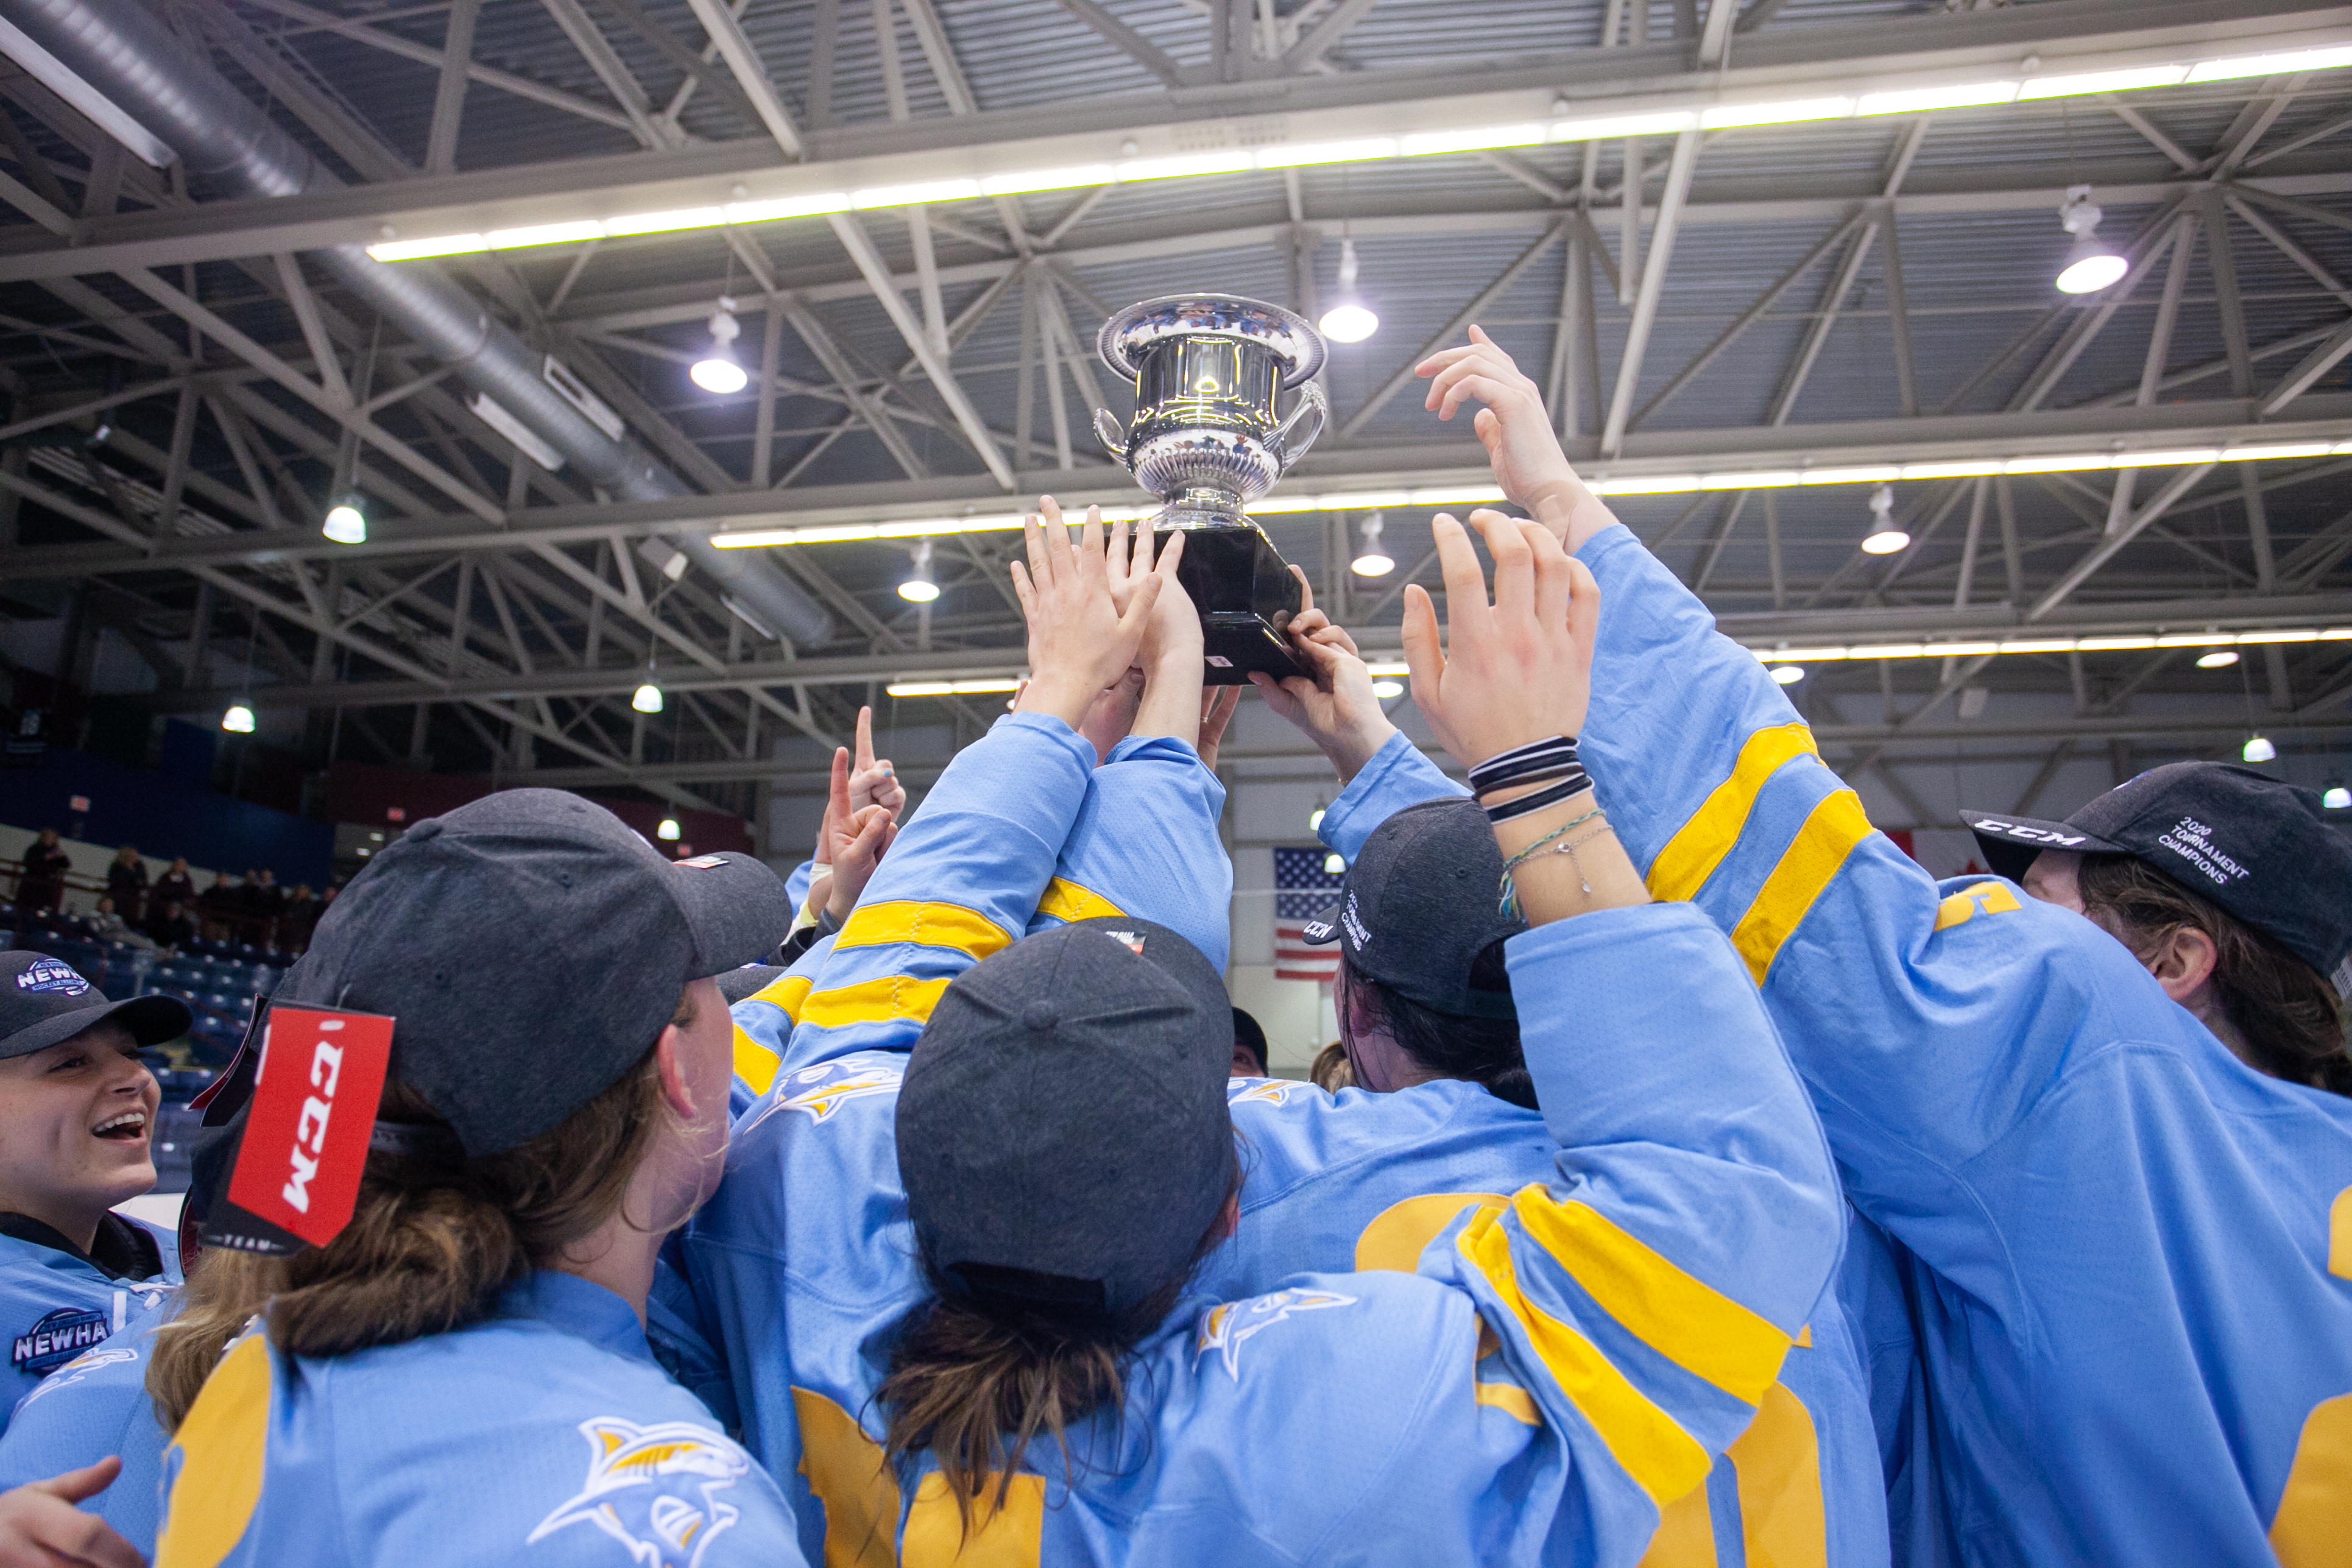 The LIU Sharks celebrate their NEWHA championship with the trophy held high.